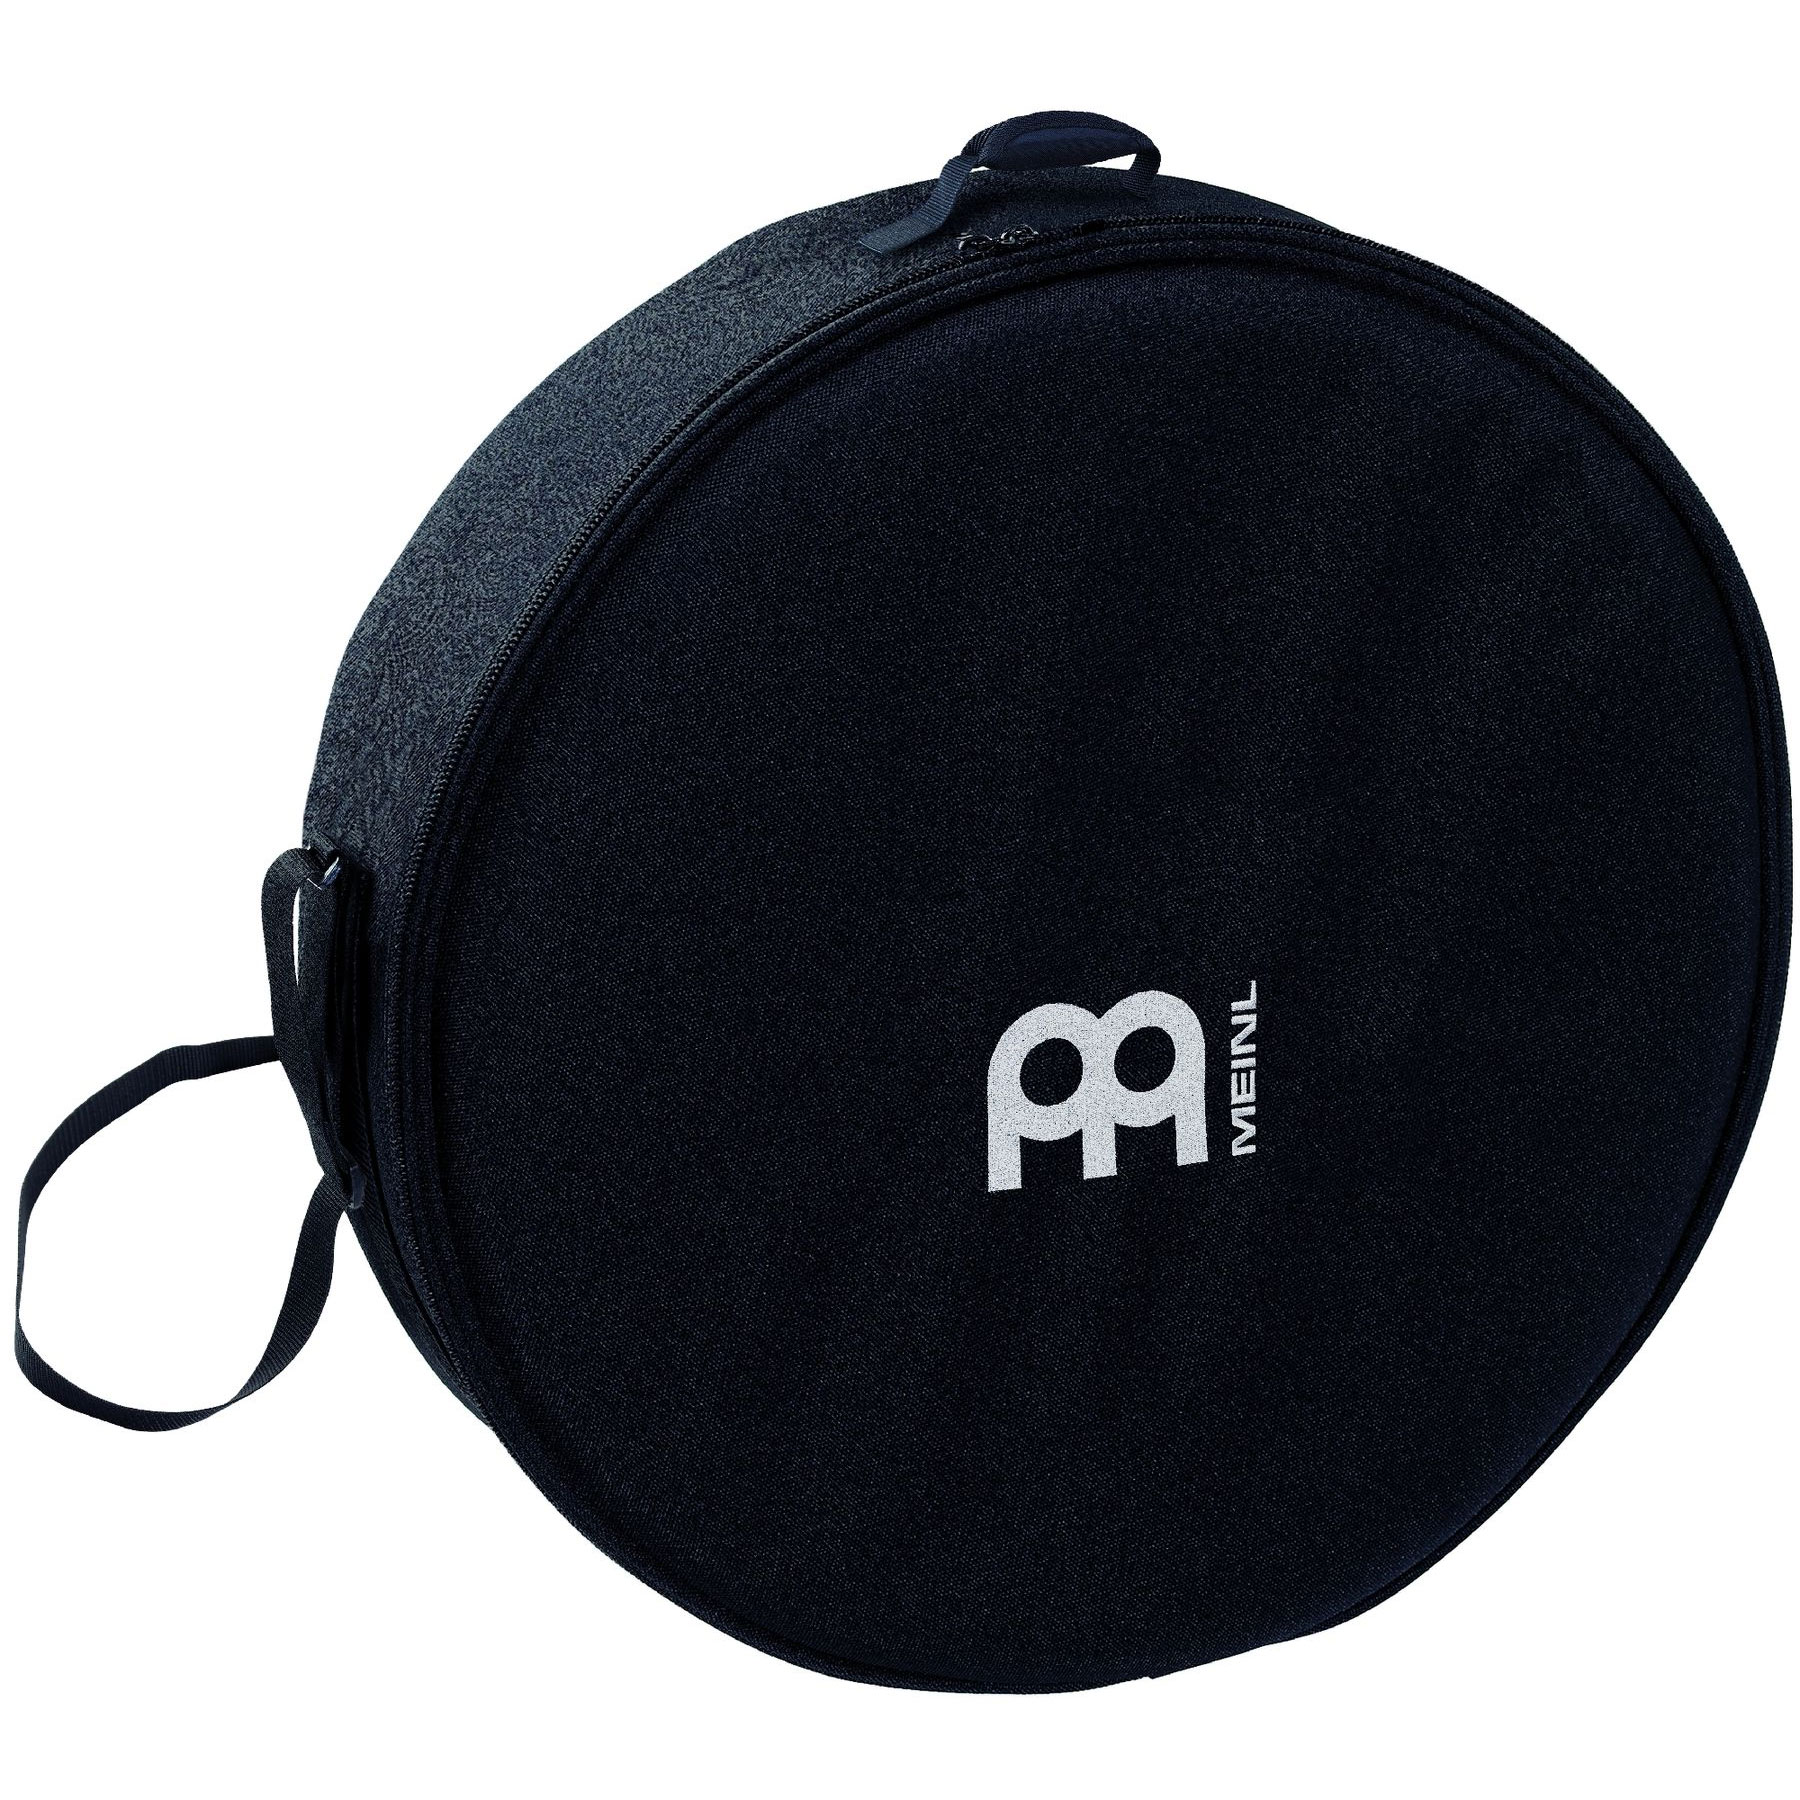 "Meinl 18"" (Diameter) Professional Frame Drum Bag"